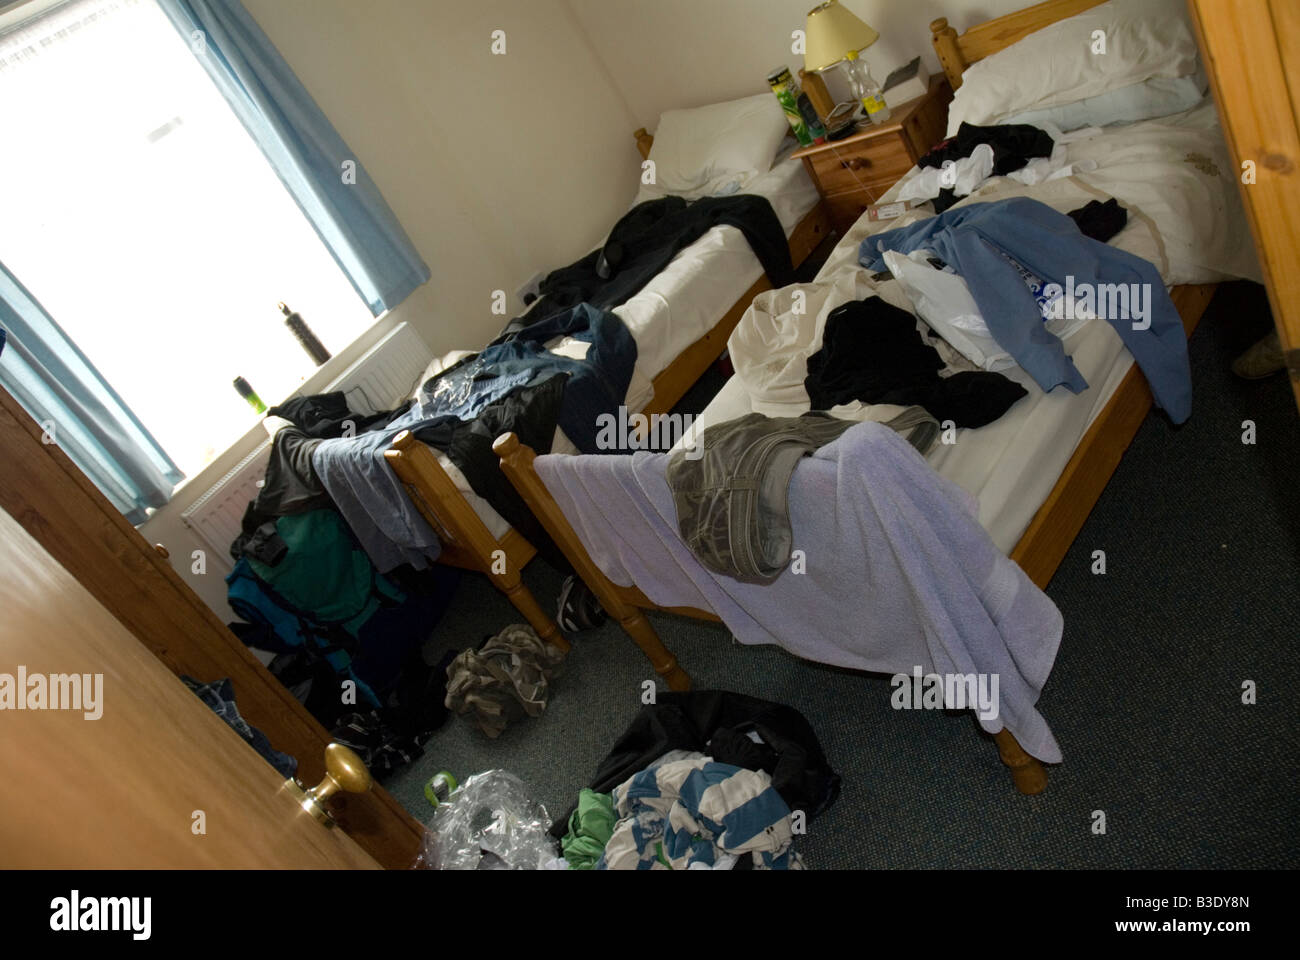 untidy photos untidy images alamy. Black Bedroom Furniture Sets. Home Design Ideas